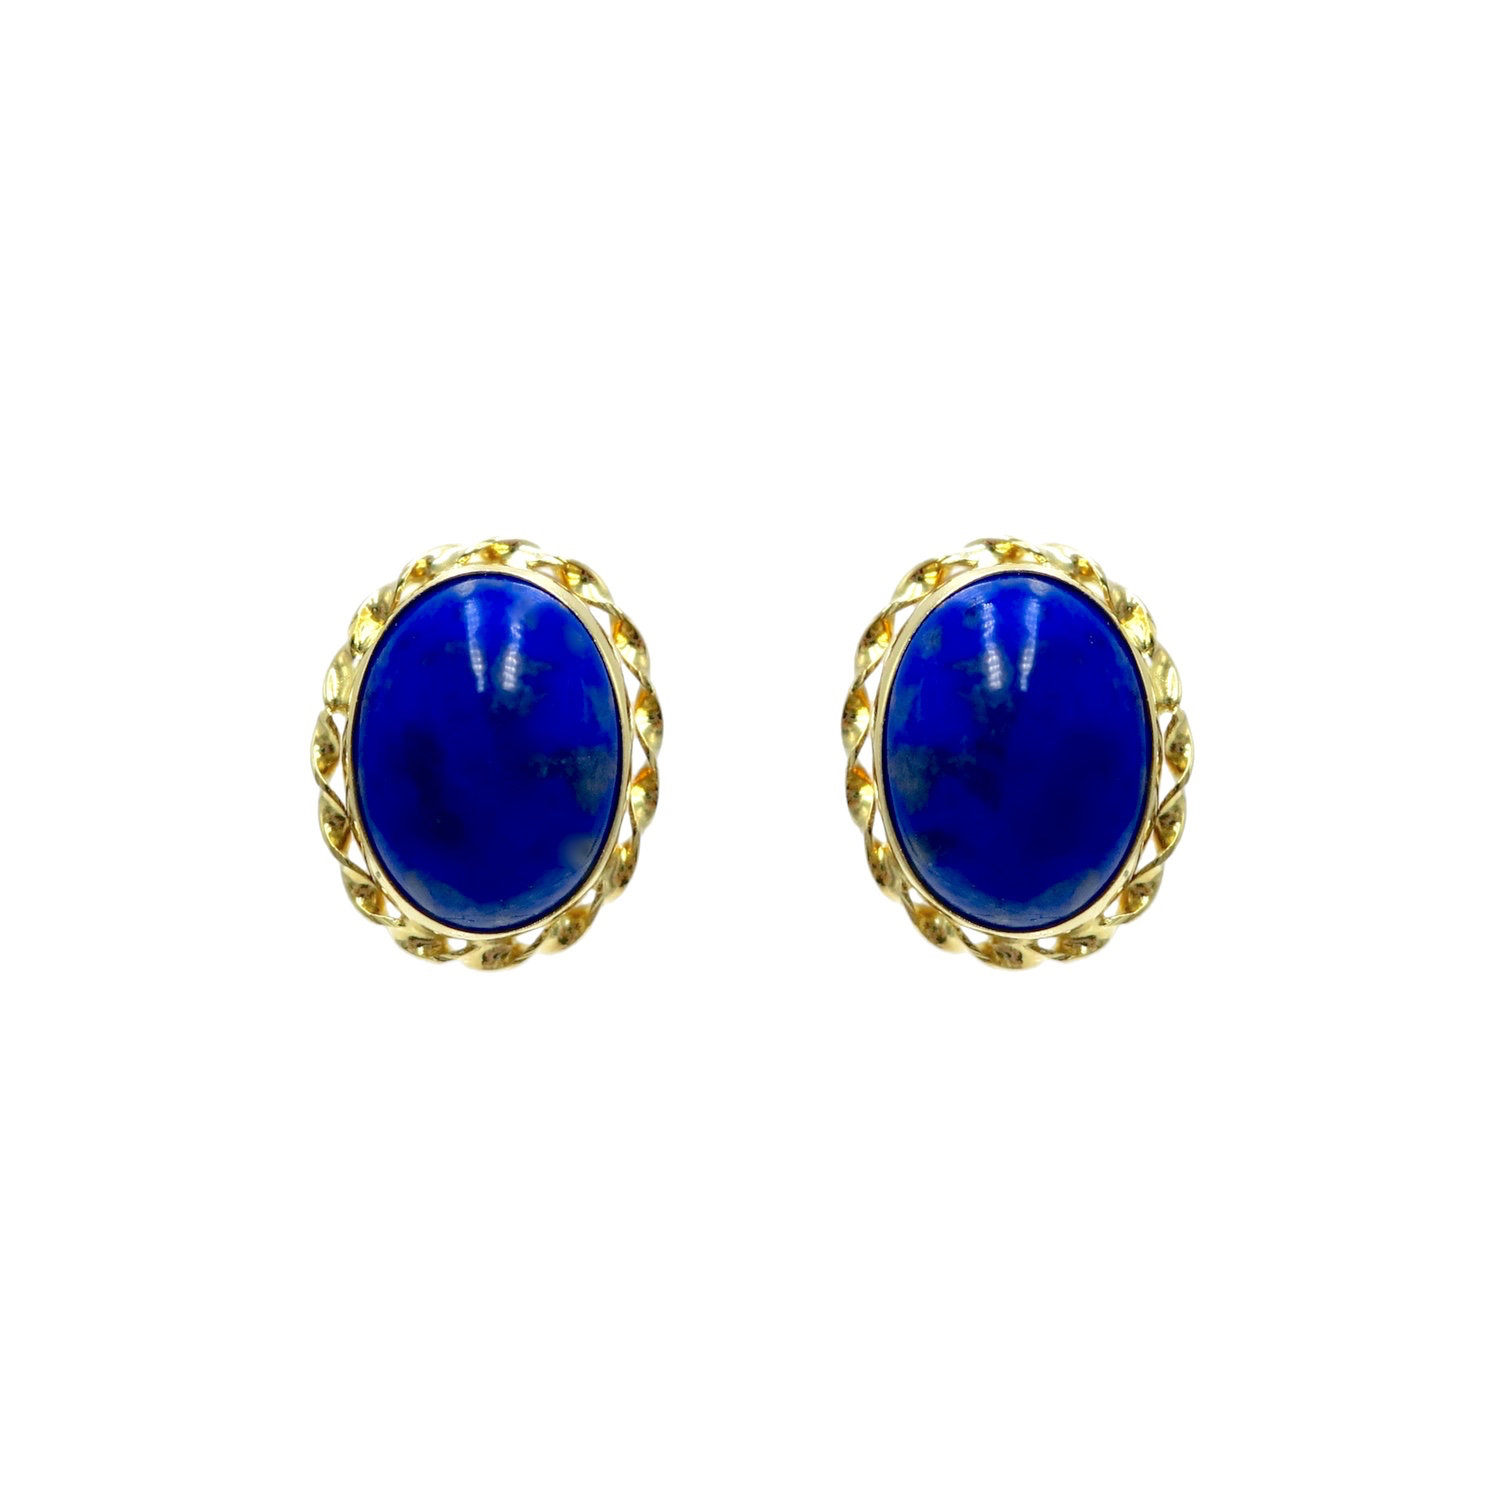 ea85468046f0ed ... stud earrings featuring a gem which was treasured by the ancient  civilizations of Mesopotamia, Egypt, China, Greece, and Rome. The royal  blue lapis ...